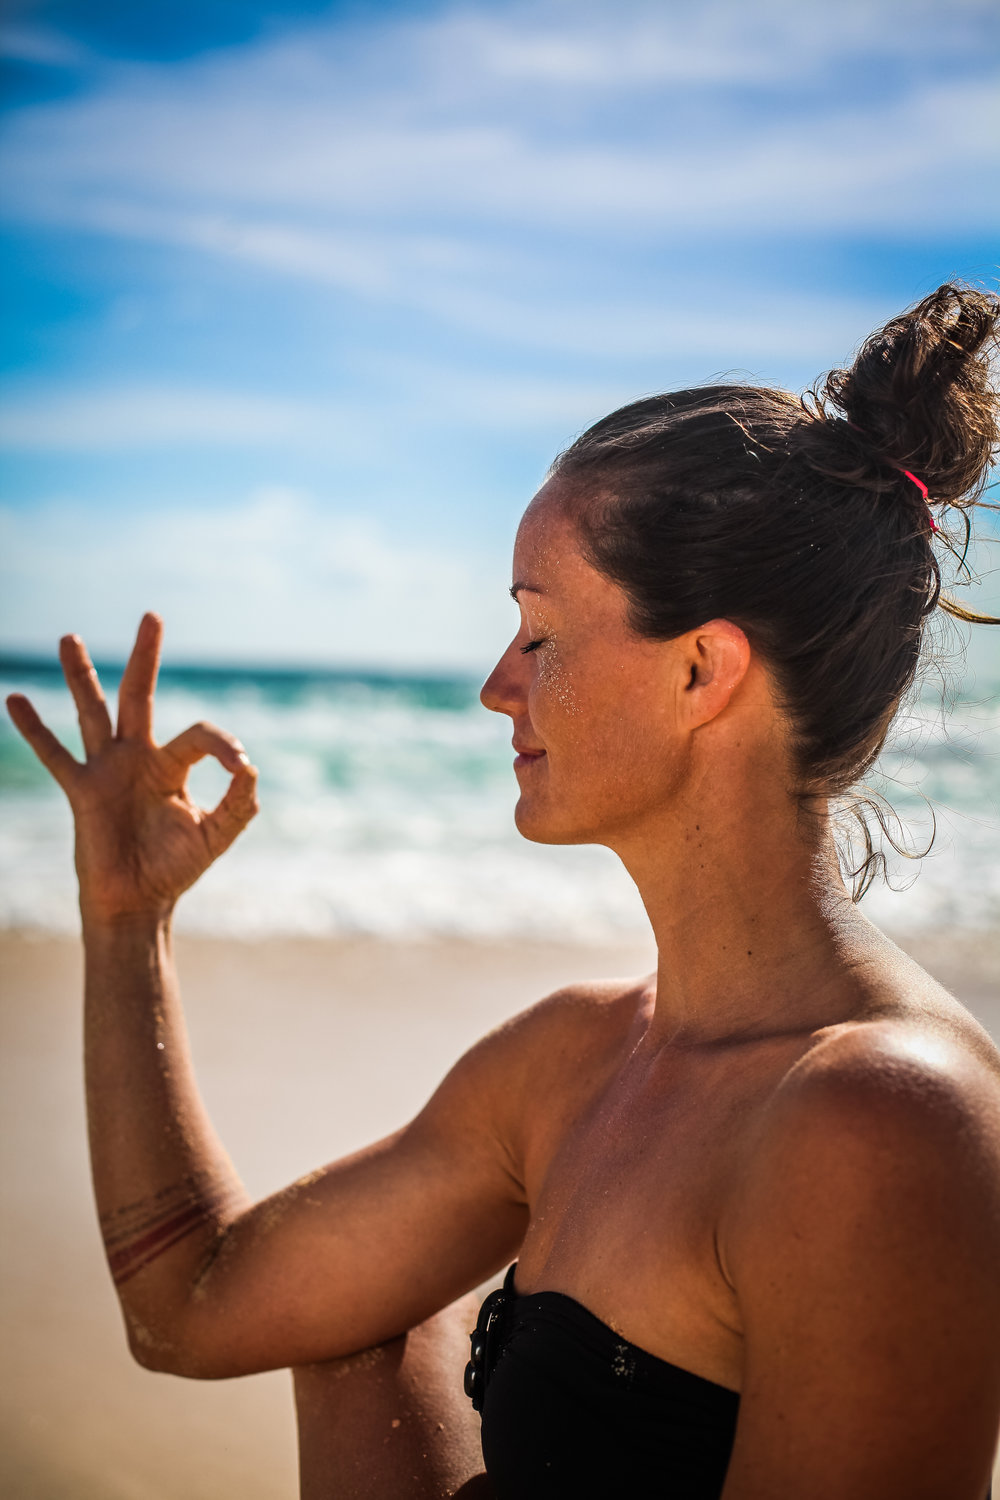 Re-programyour mind and life with yoga, meditation, mental training, an active lifestyle and healthy habits. - Looking for a way to improve your life and increase the feeling of freedom and happiness in your life, but not quite sure where to start?